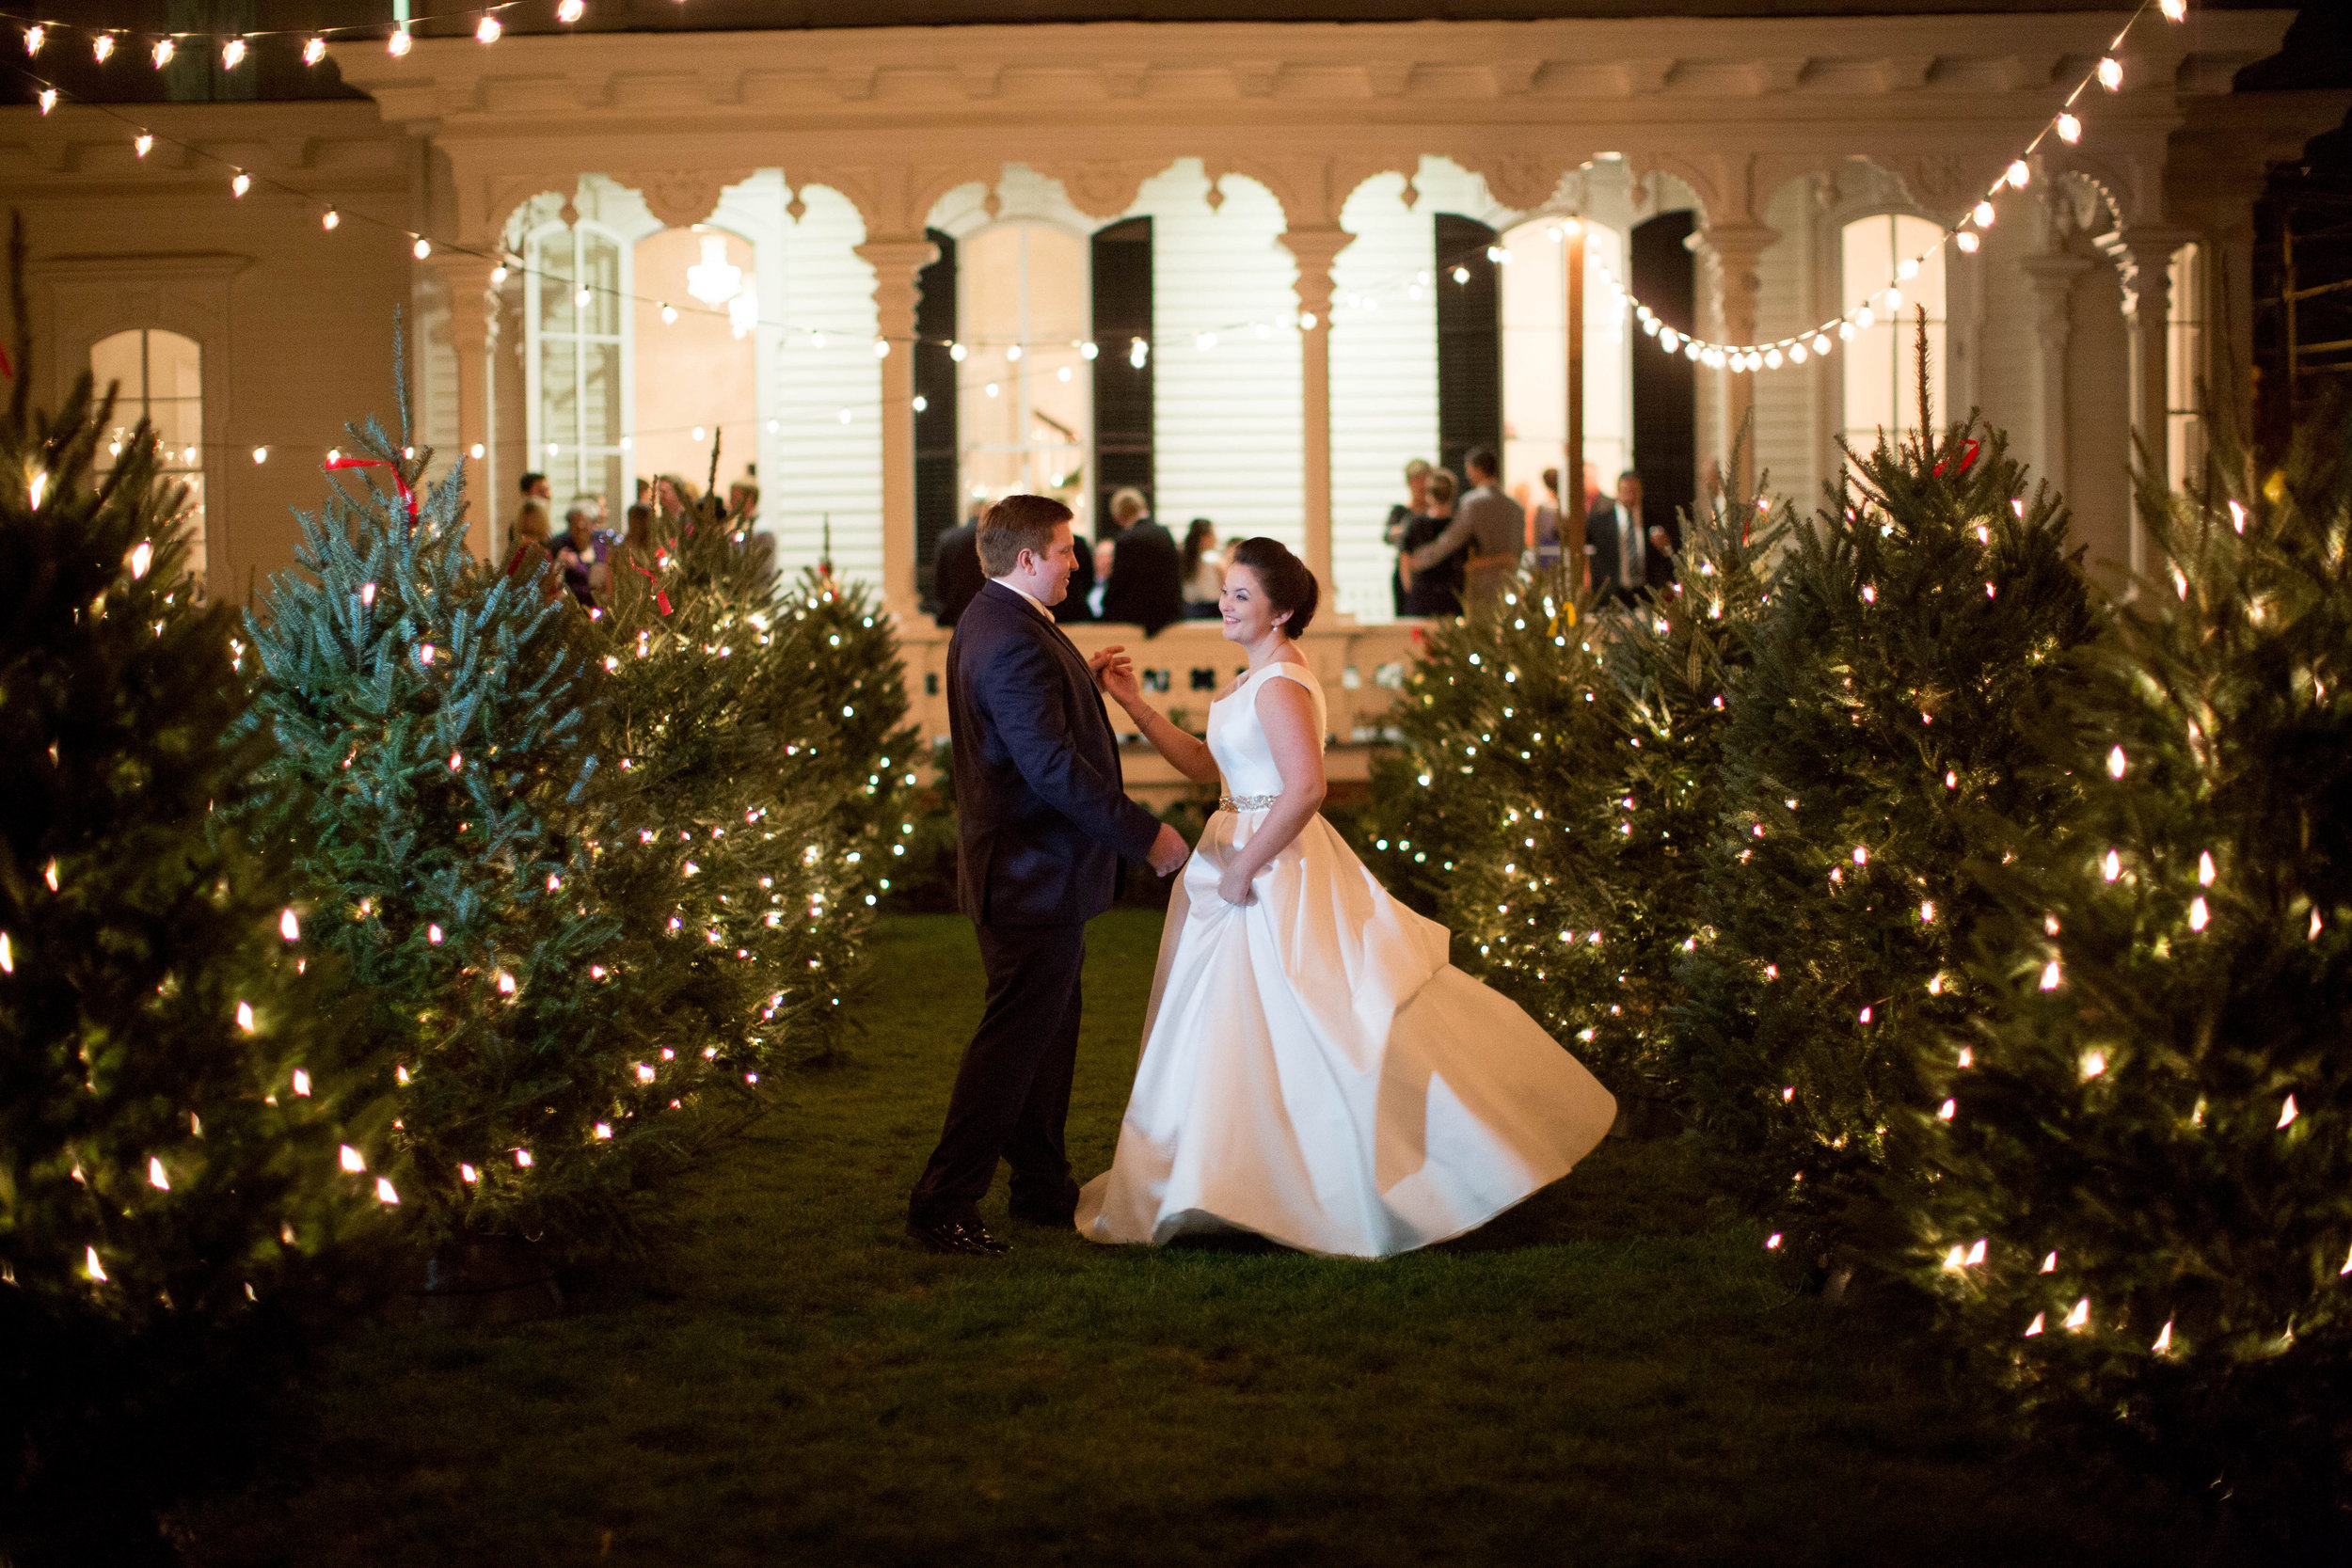 Christmas Tree Farm Weddings.Christmas Tree Farm In Downtown Raleigh Amanda Jonathan S